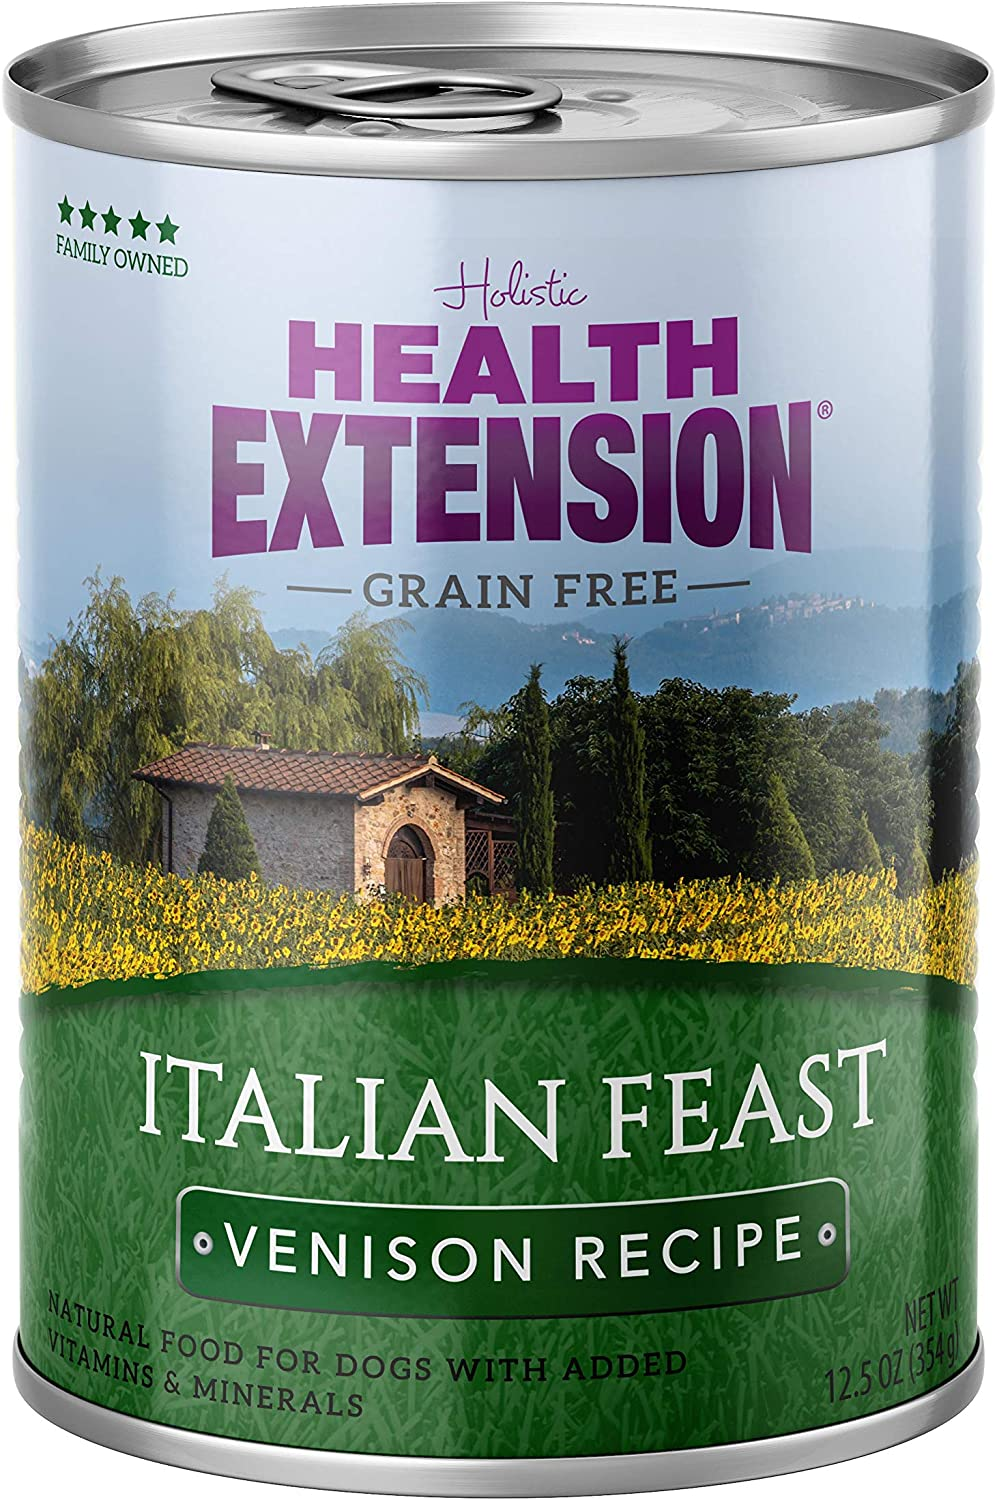 Health Extension Grain Free Italian Feast Canned Wet Dog Food - (12) 12.5 Oz Cans